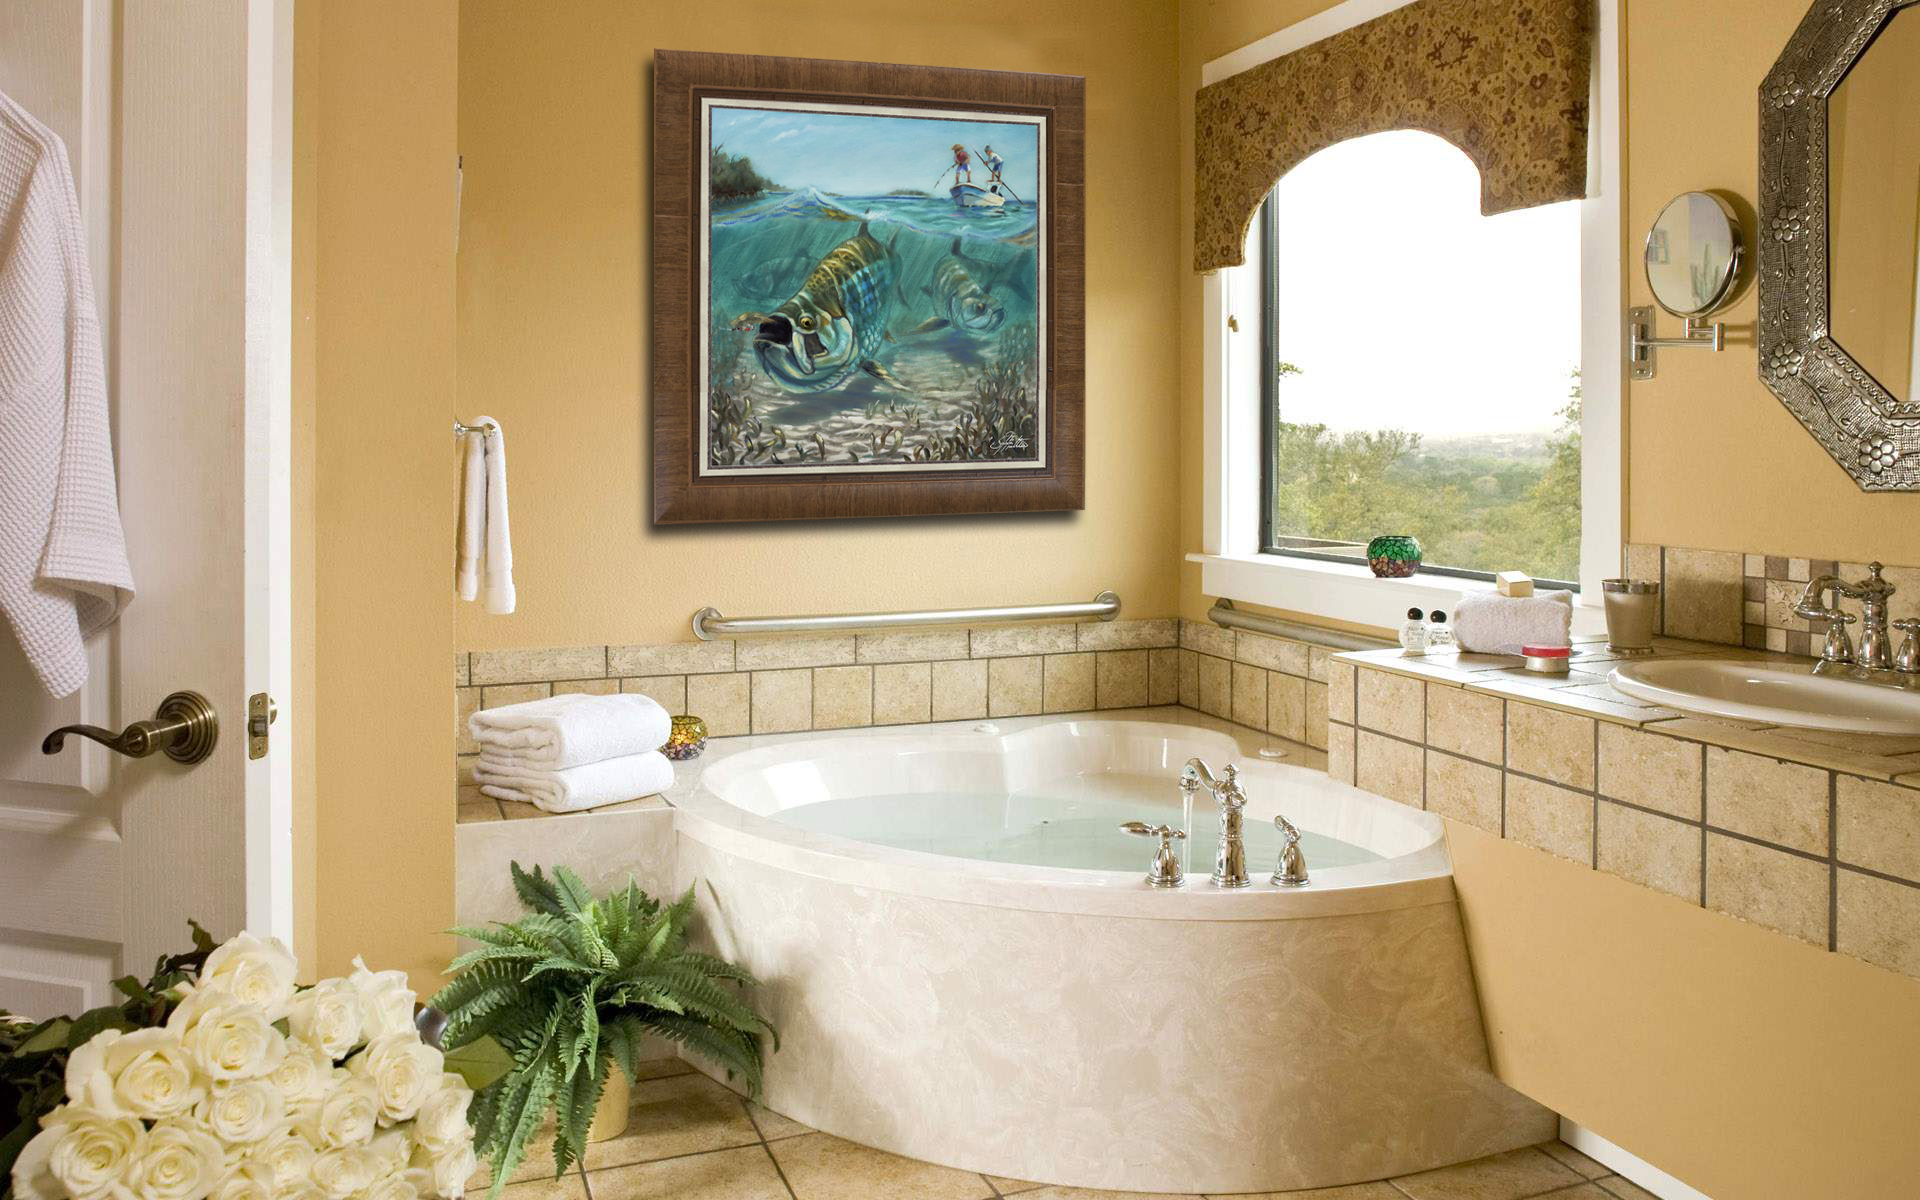 tarpon-fever-bath-room-home-interior-design-ideas3.jpg